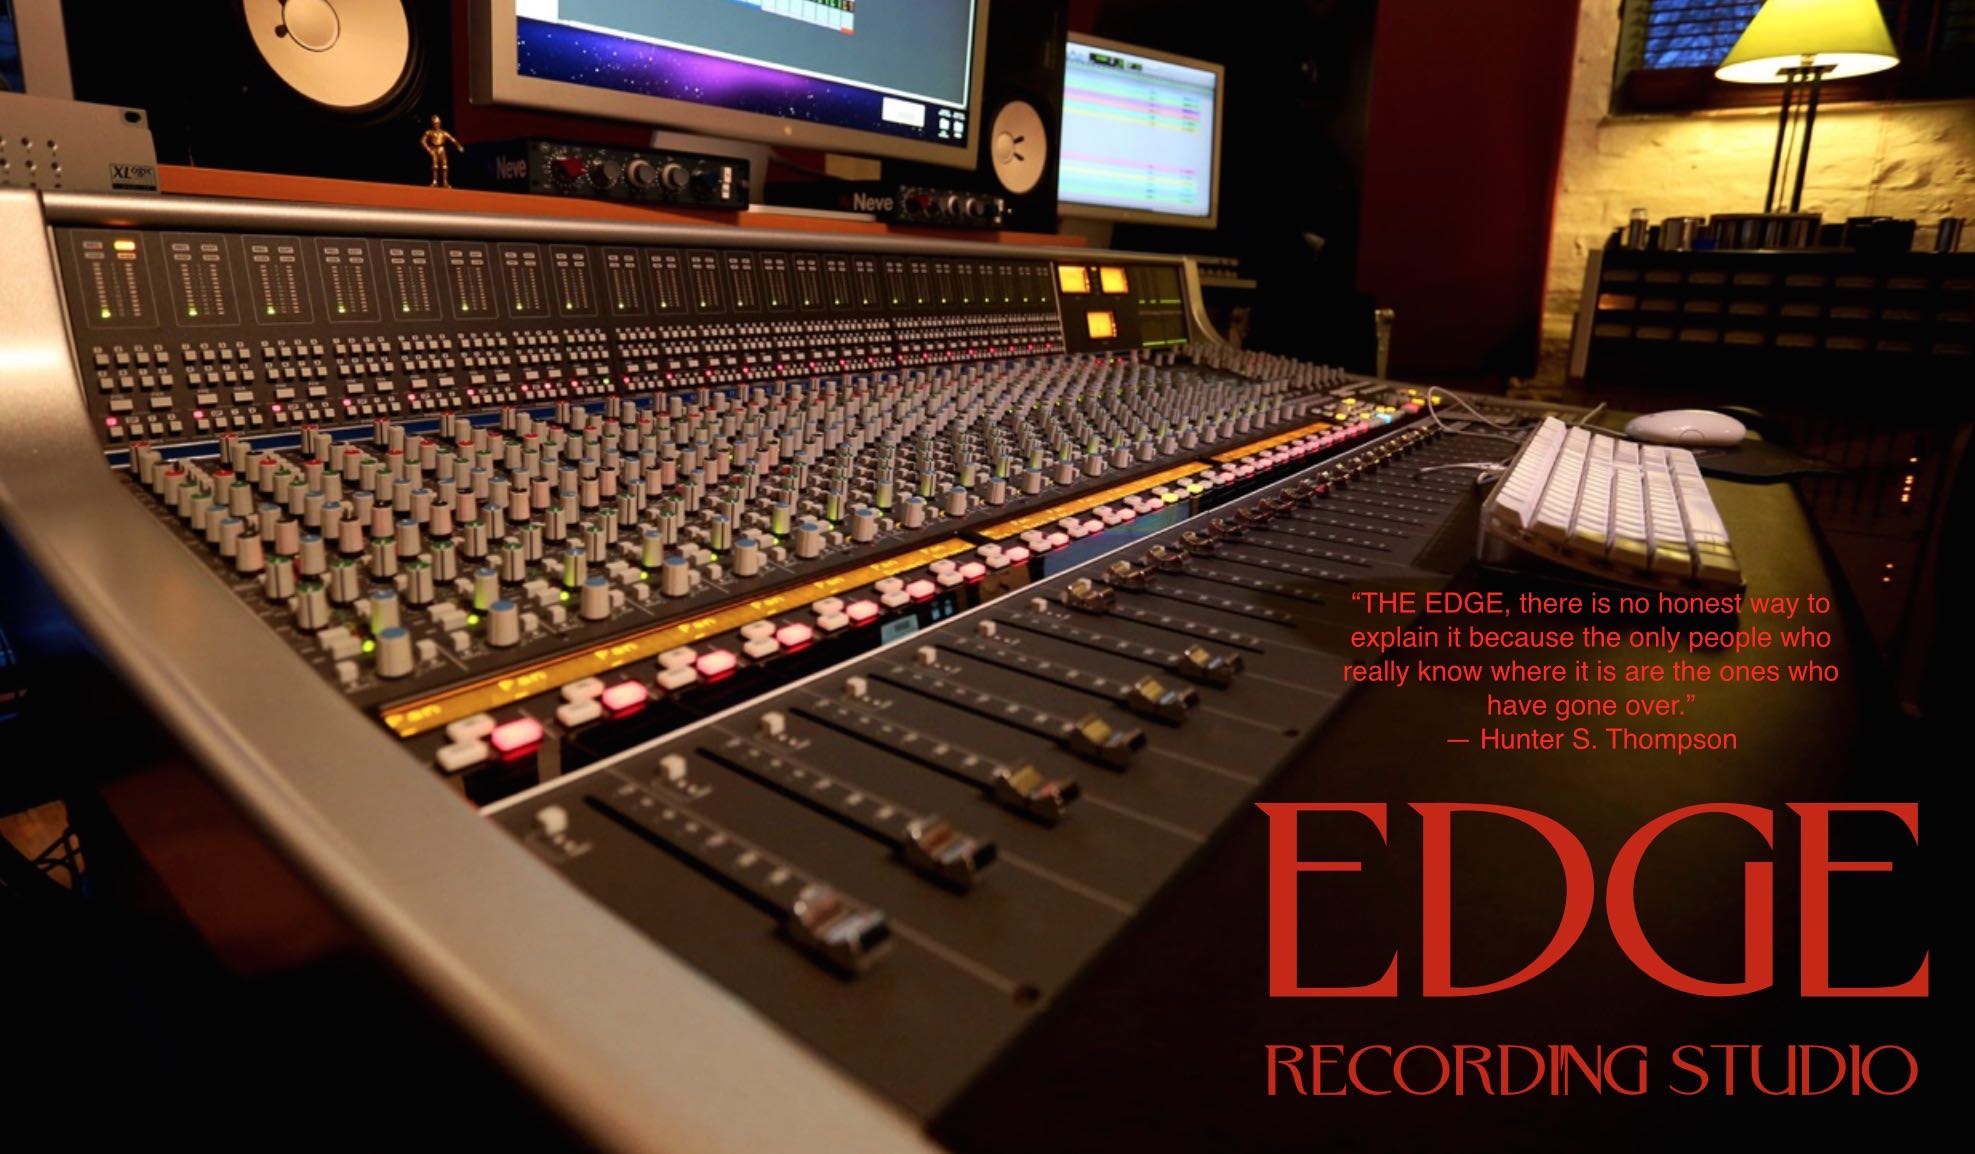 Edge Recording Studio Logo